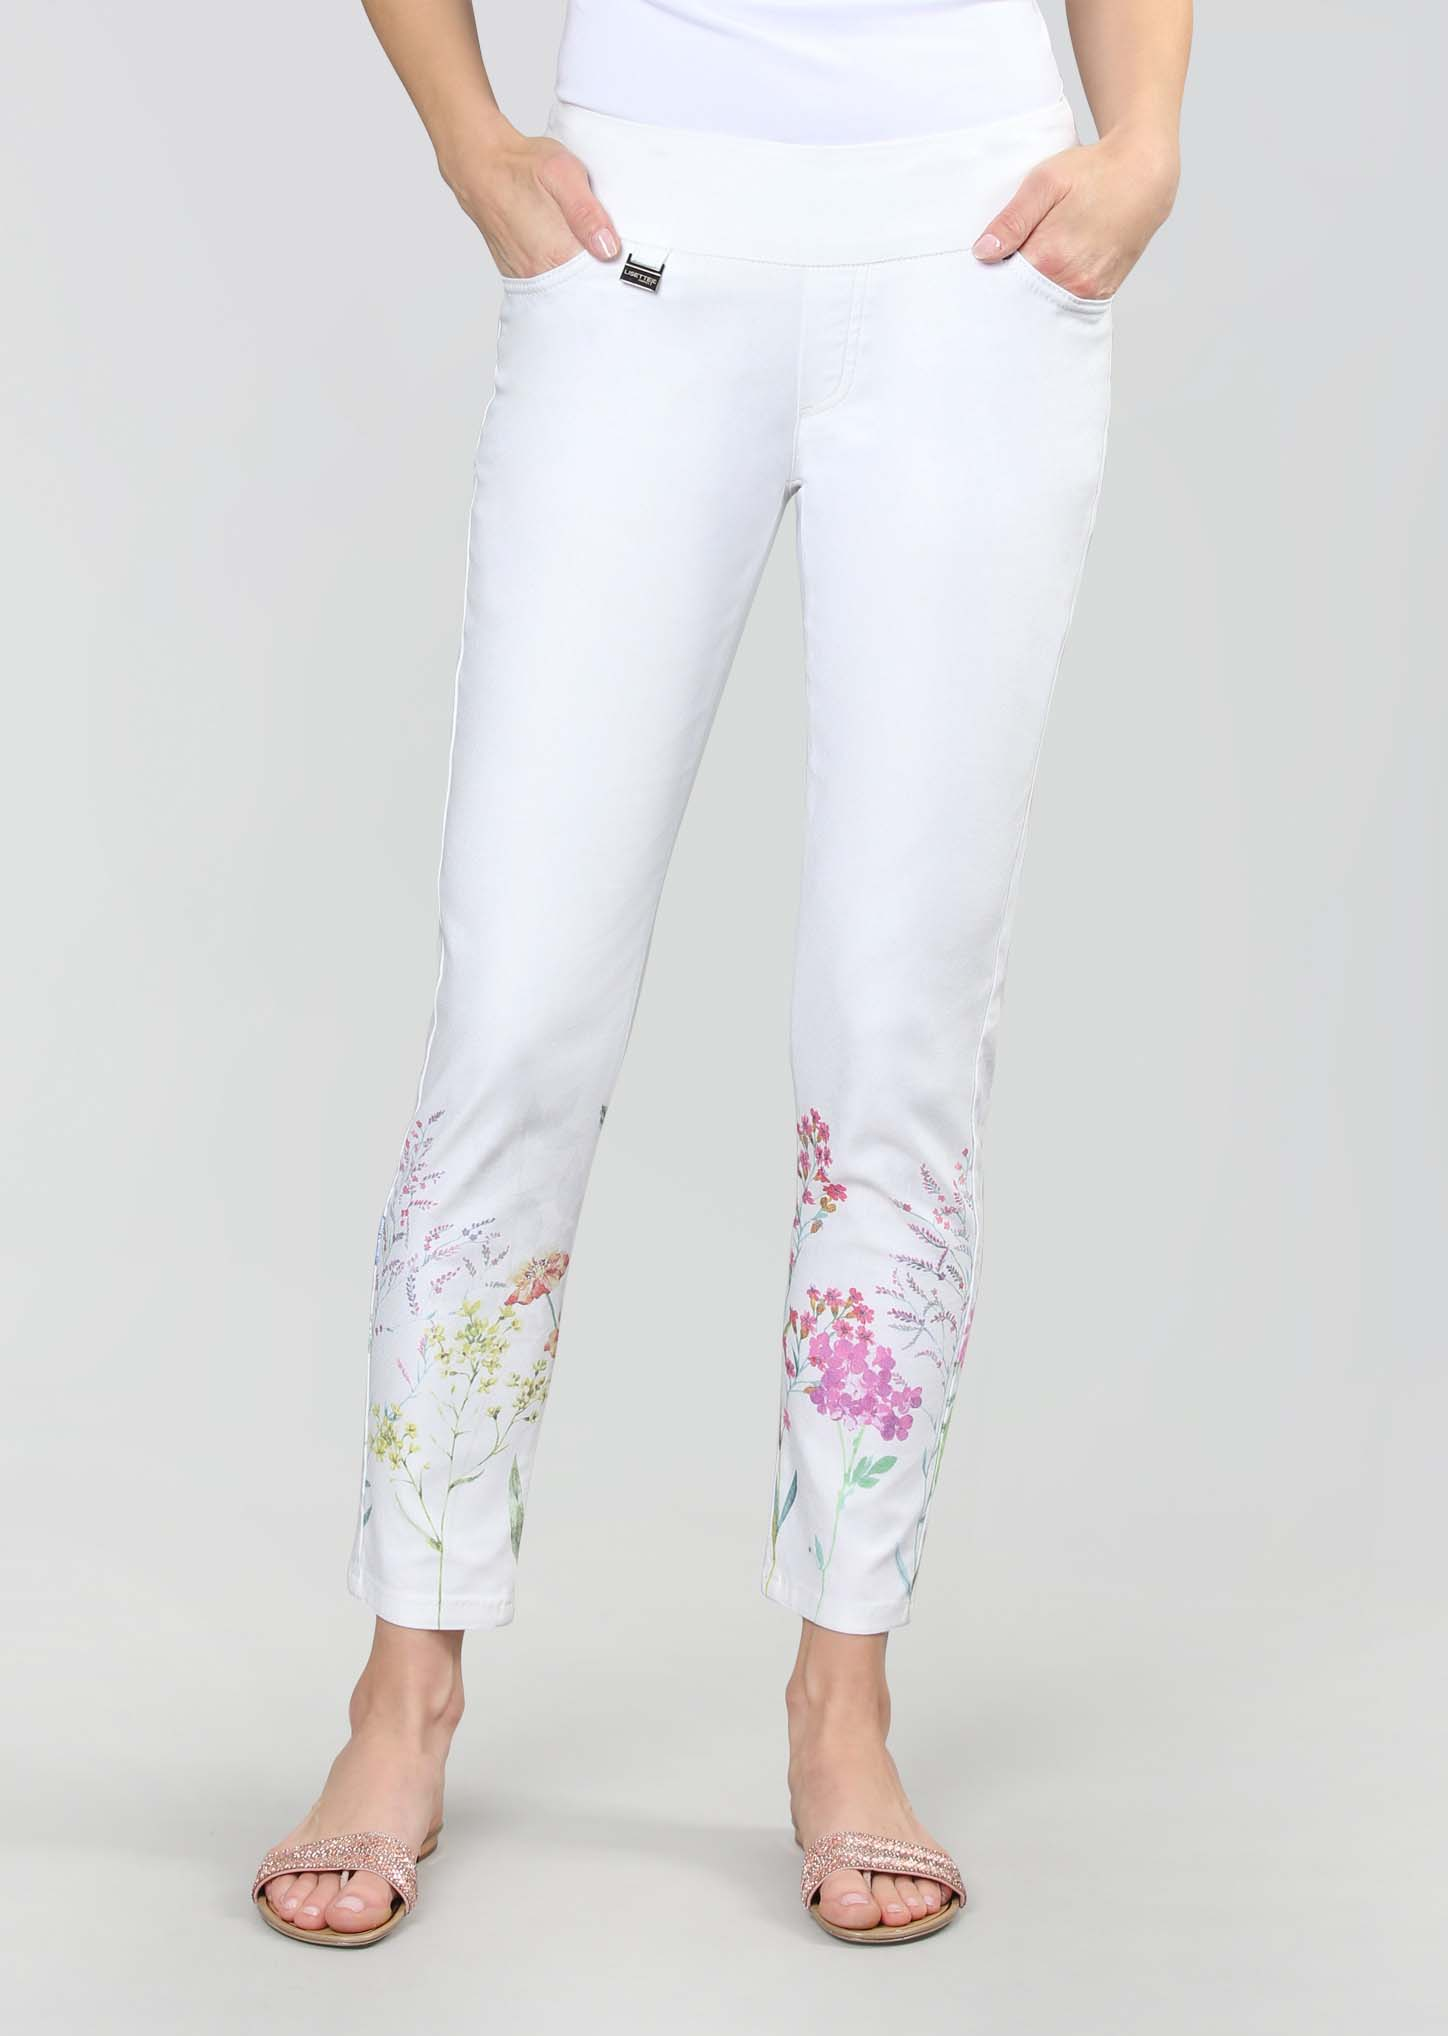 Lisette L. Slim Ankle Narrow Pant Style 766616 Matisse Floral Print Color Bright Multi